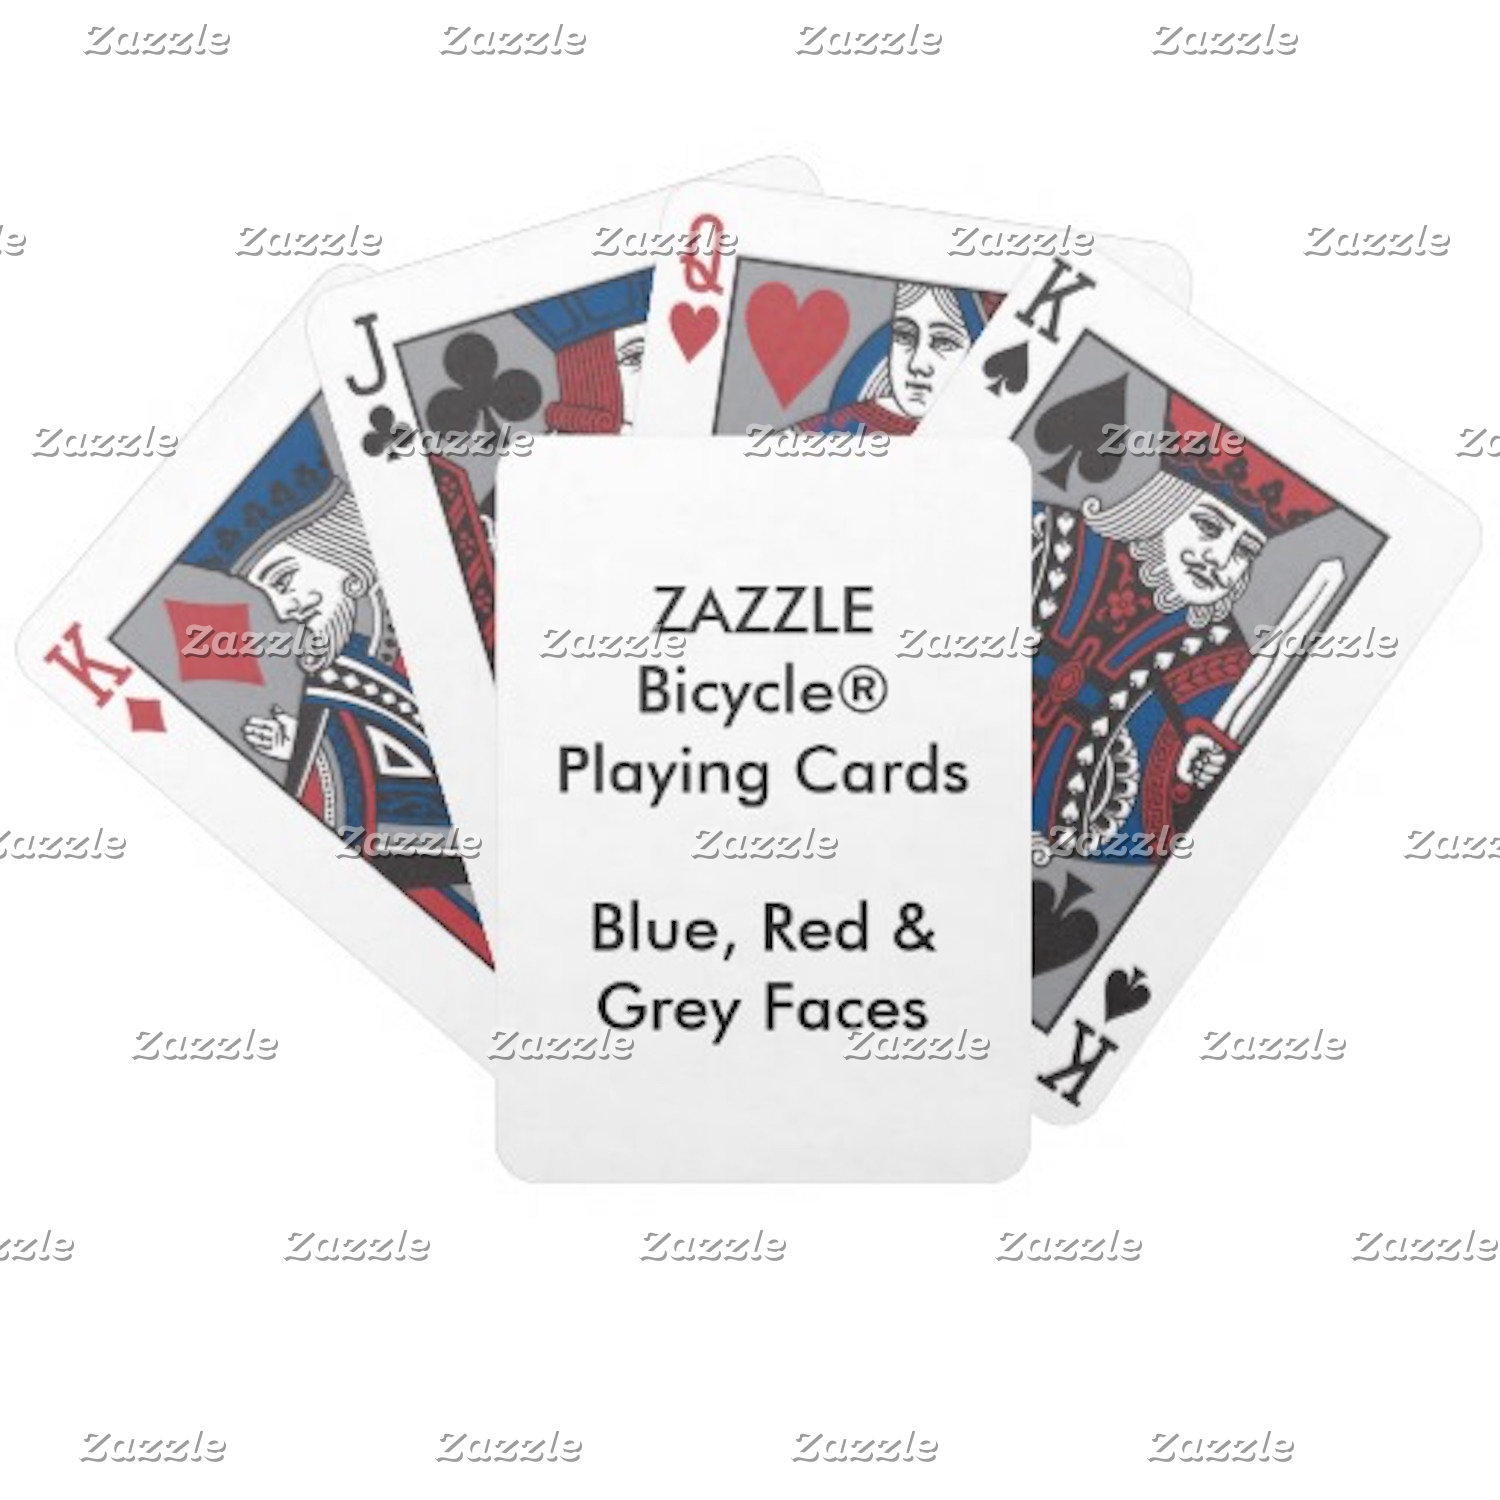 Bicycle® BLUE, RED & GRAY Faces